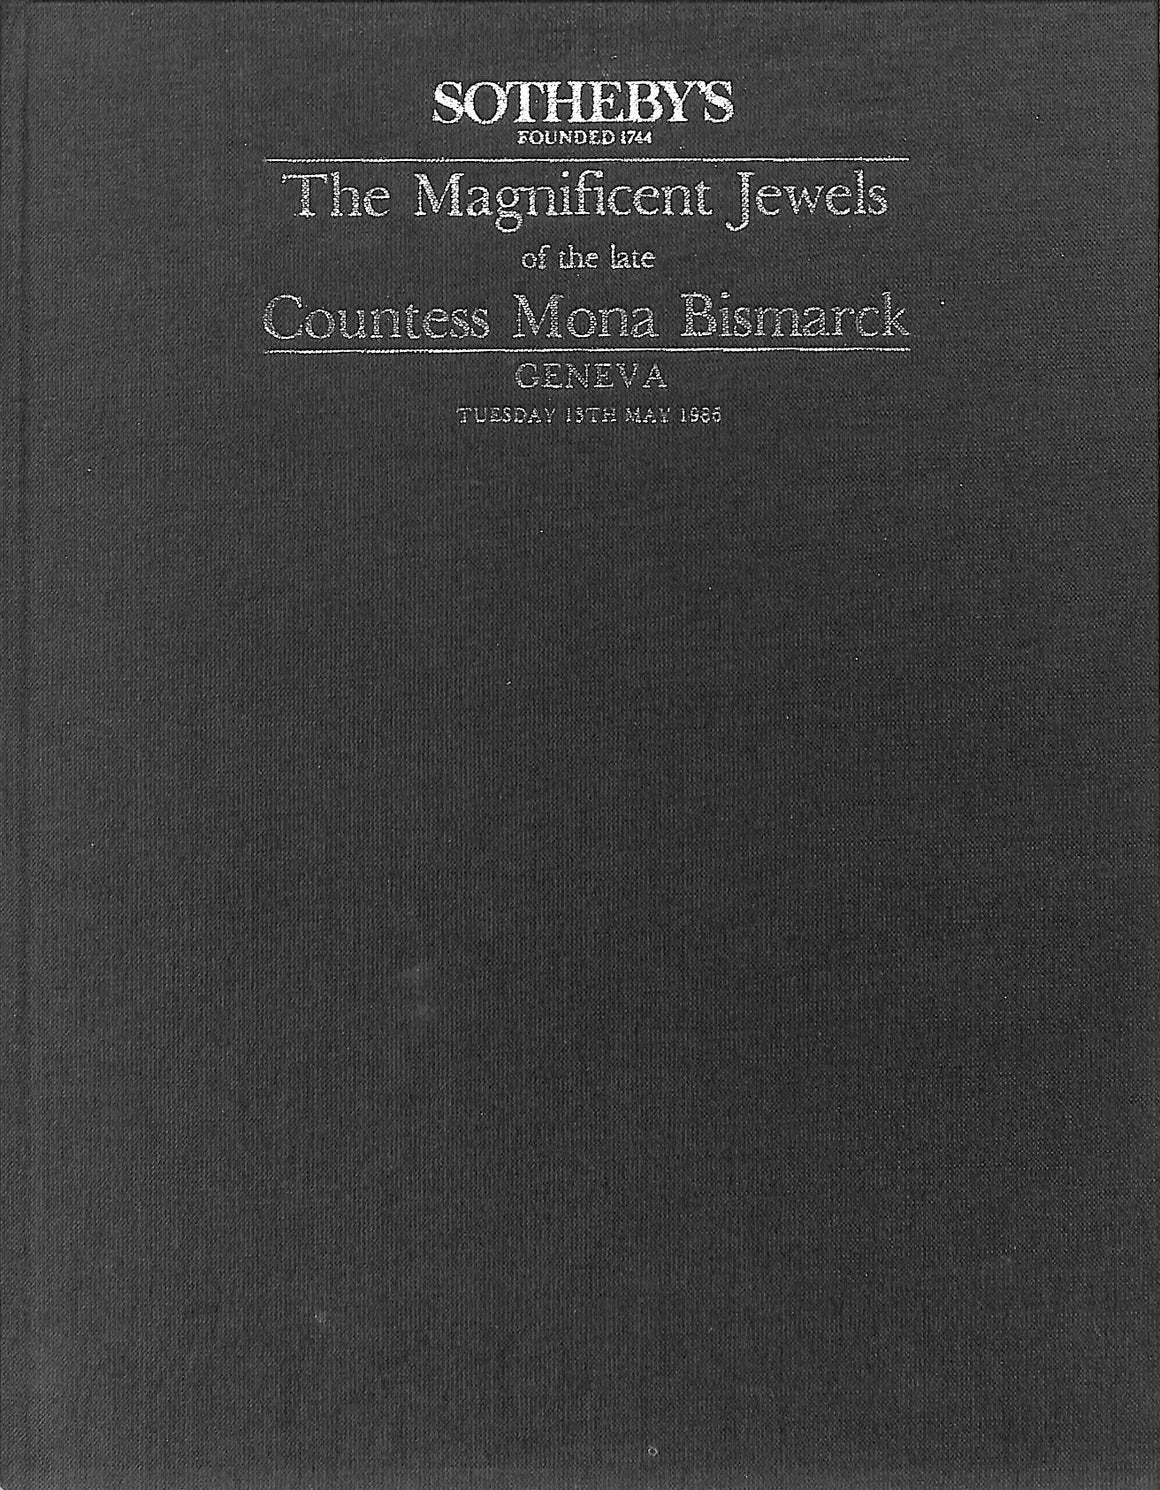 """The Magnificent Jewels of the late Countess Mona Bismarck"" 1986 (SOLD!)"